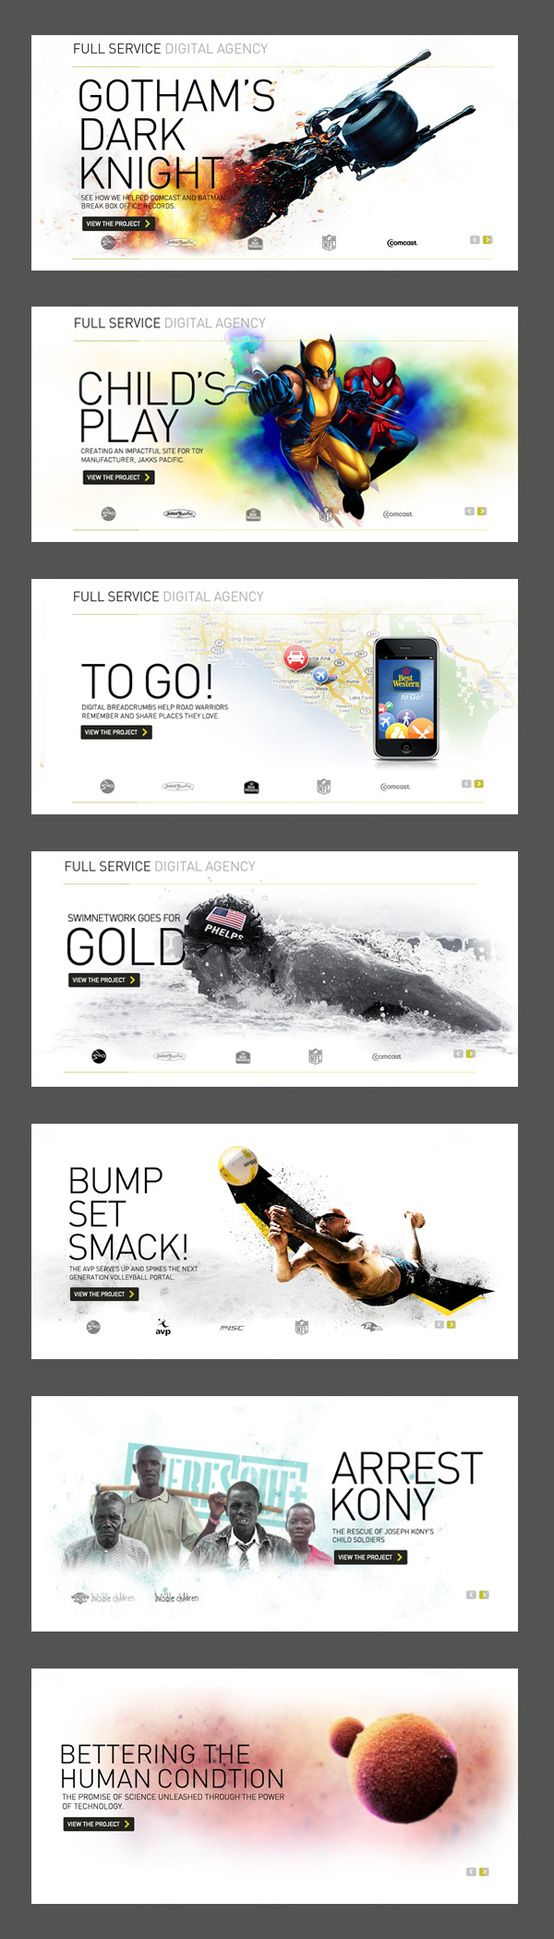 Full Service Digital Agency ~ #WebDesign #GraphicDesign #Inspiration